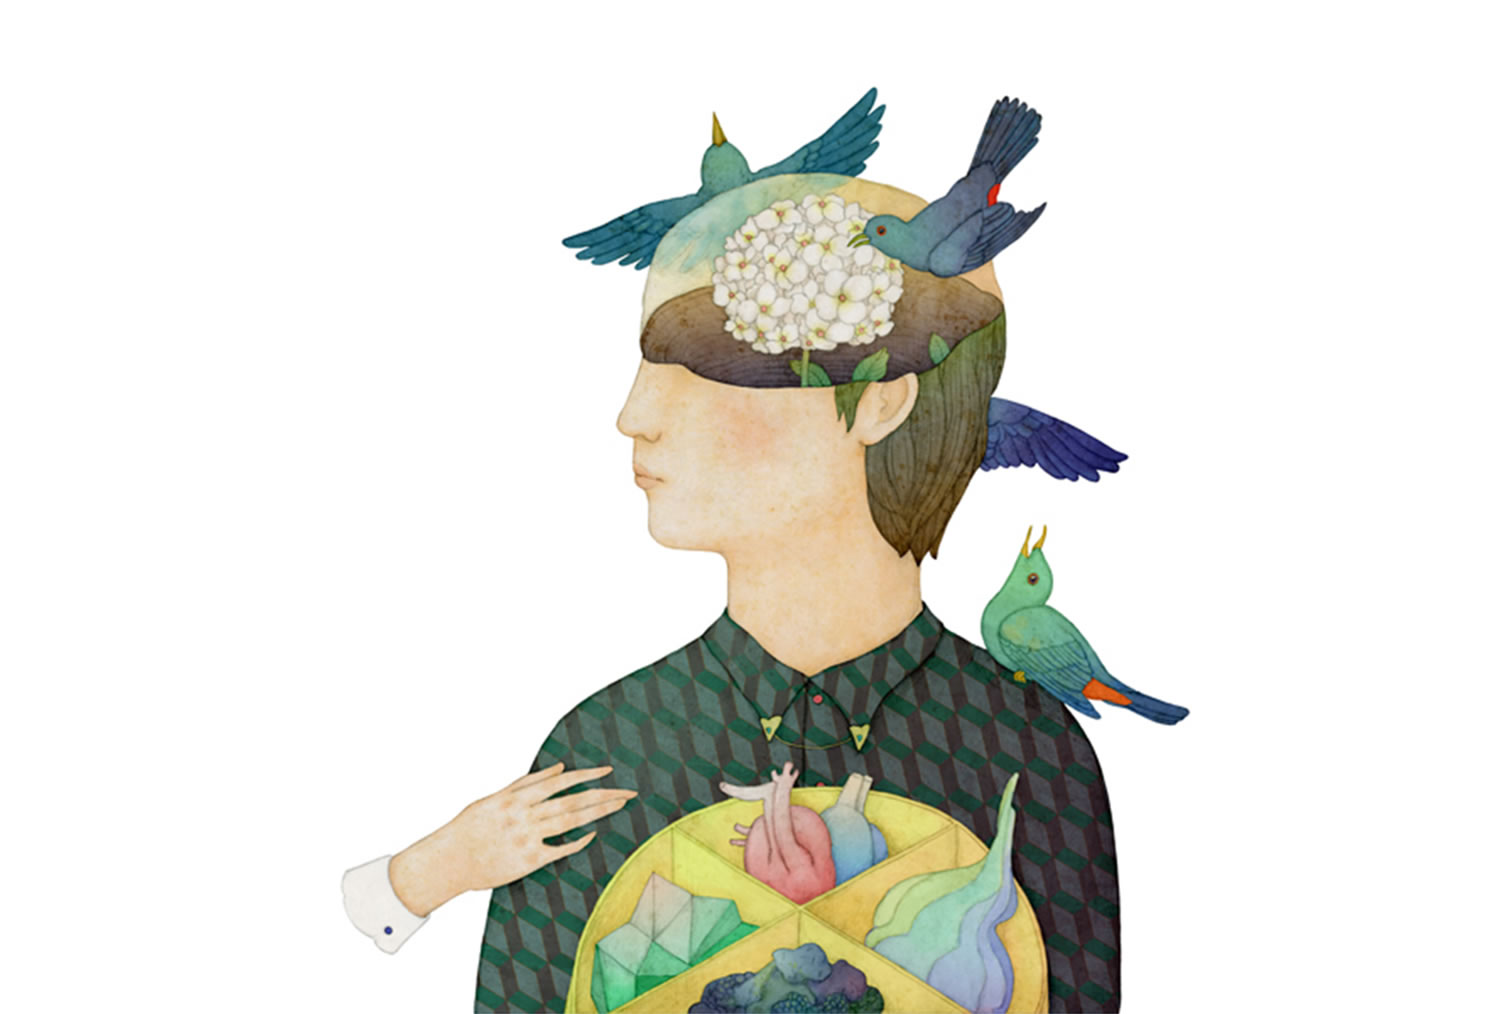 whooli chen portrait with birds around face